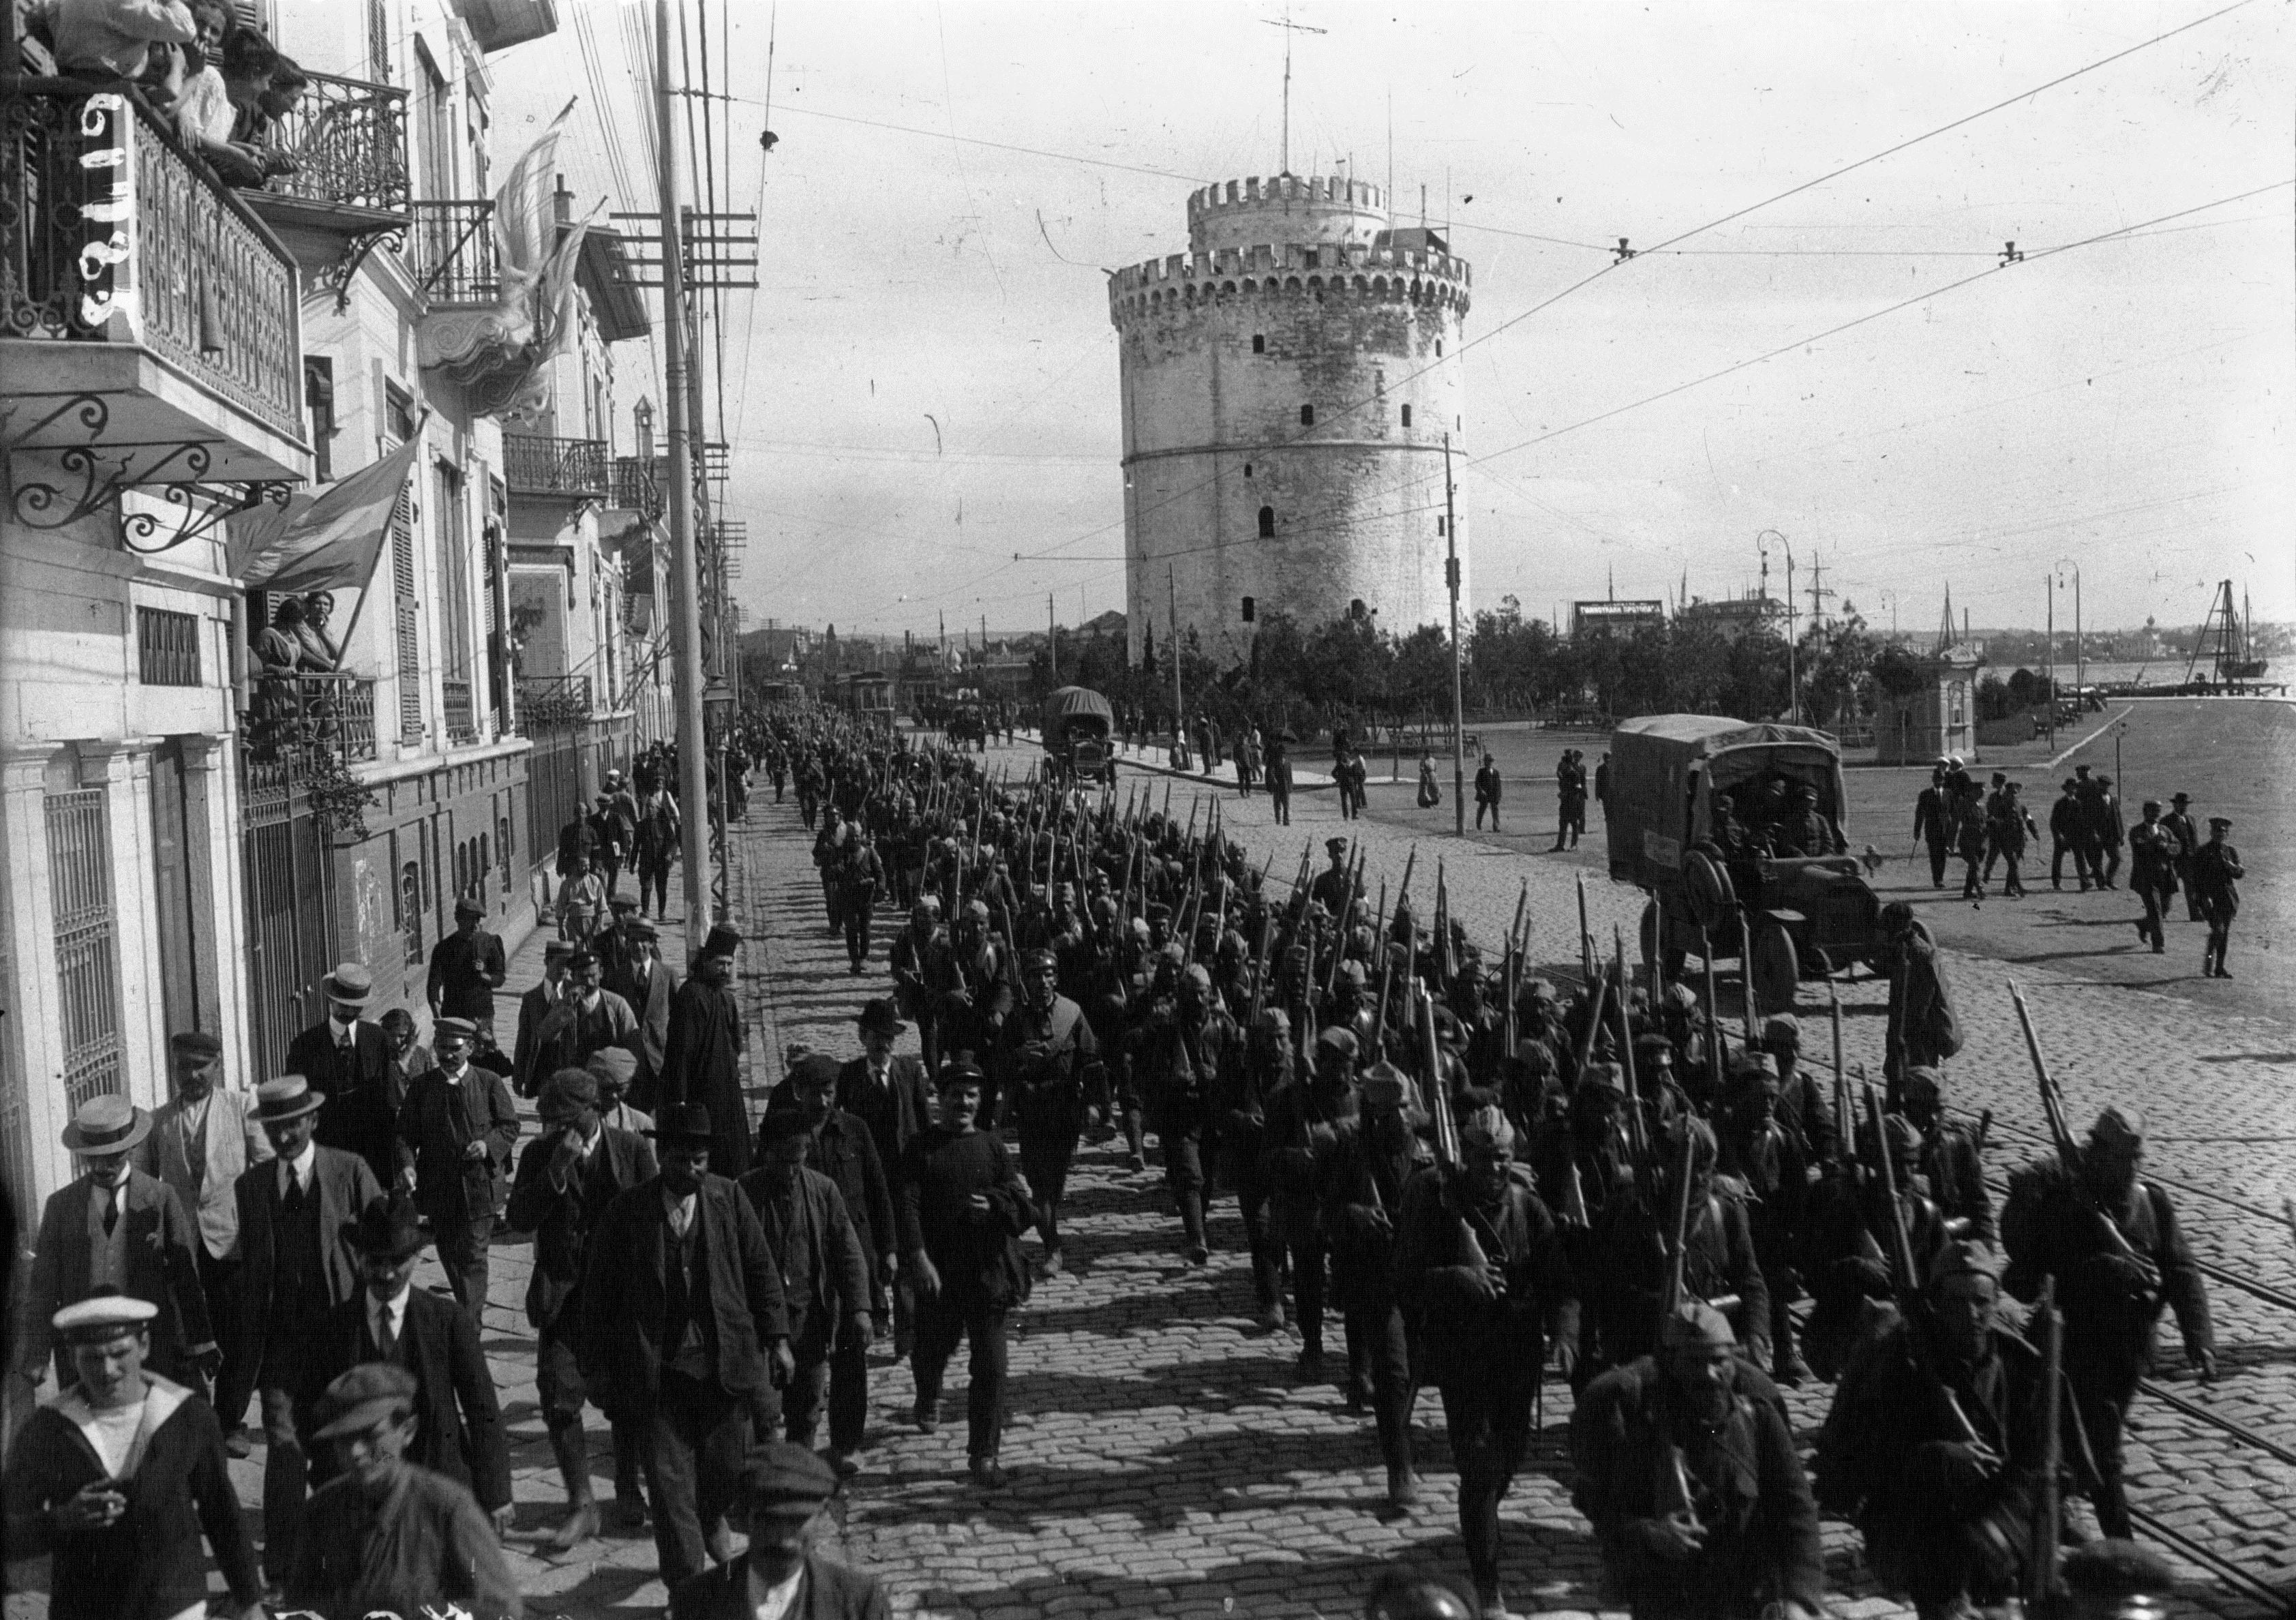 The National Defense Army finally marches to war in 1917. Note the motor vehicles and rails